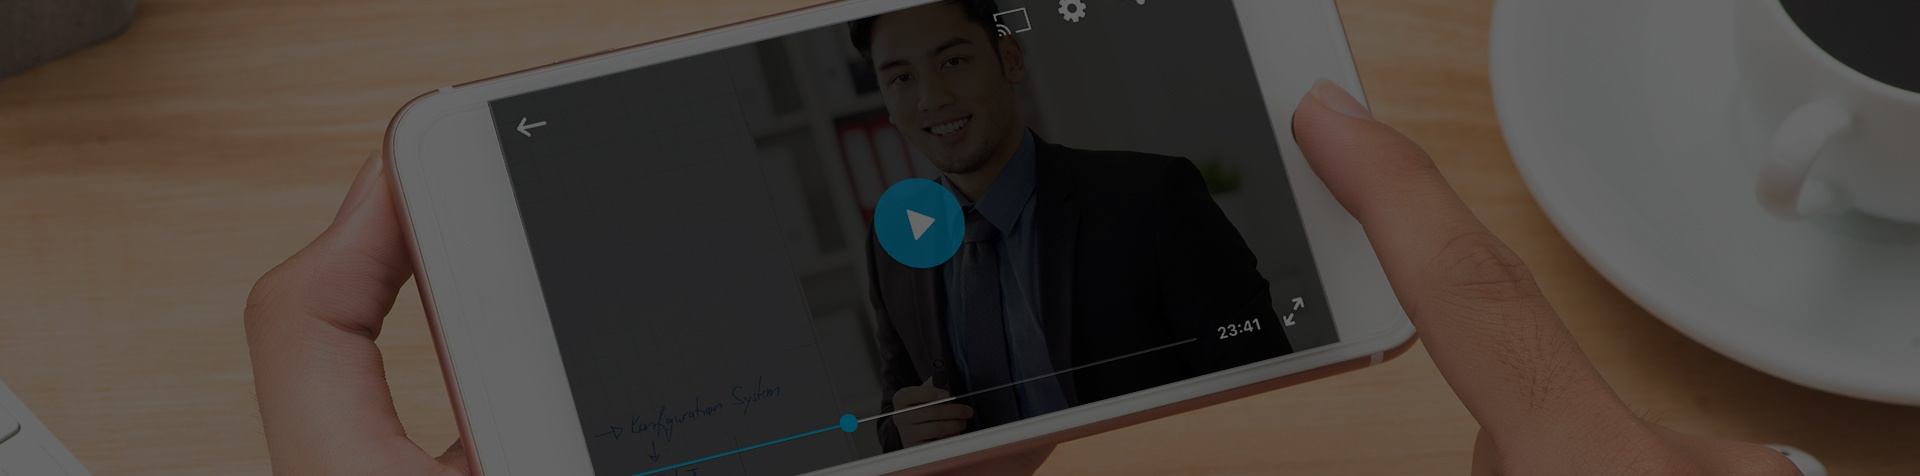 Selecting a Video Player in Today's Digital World